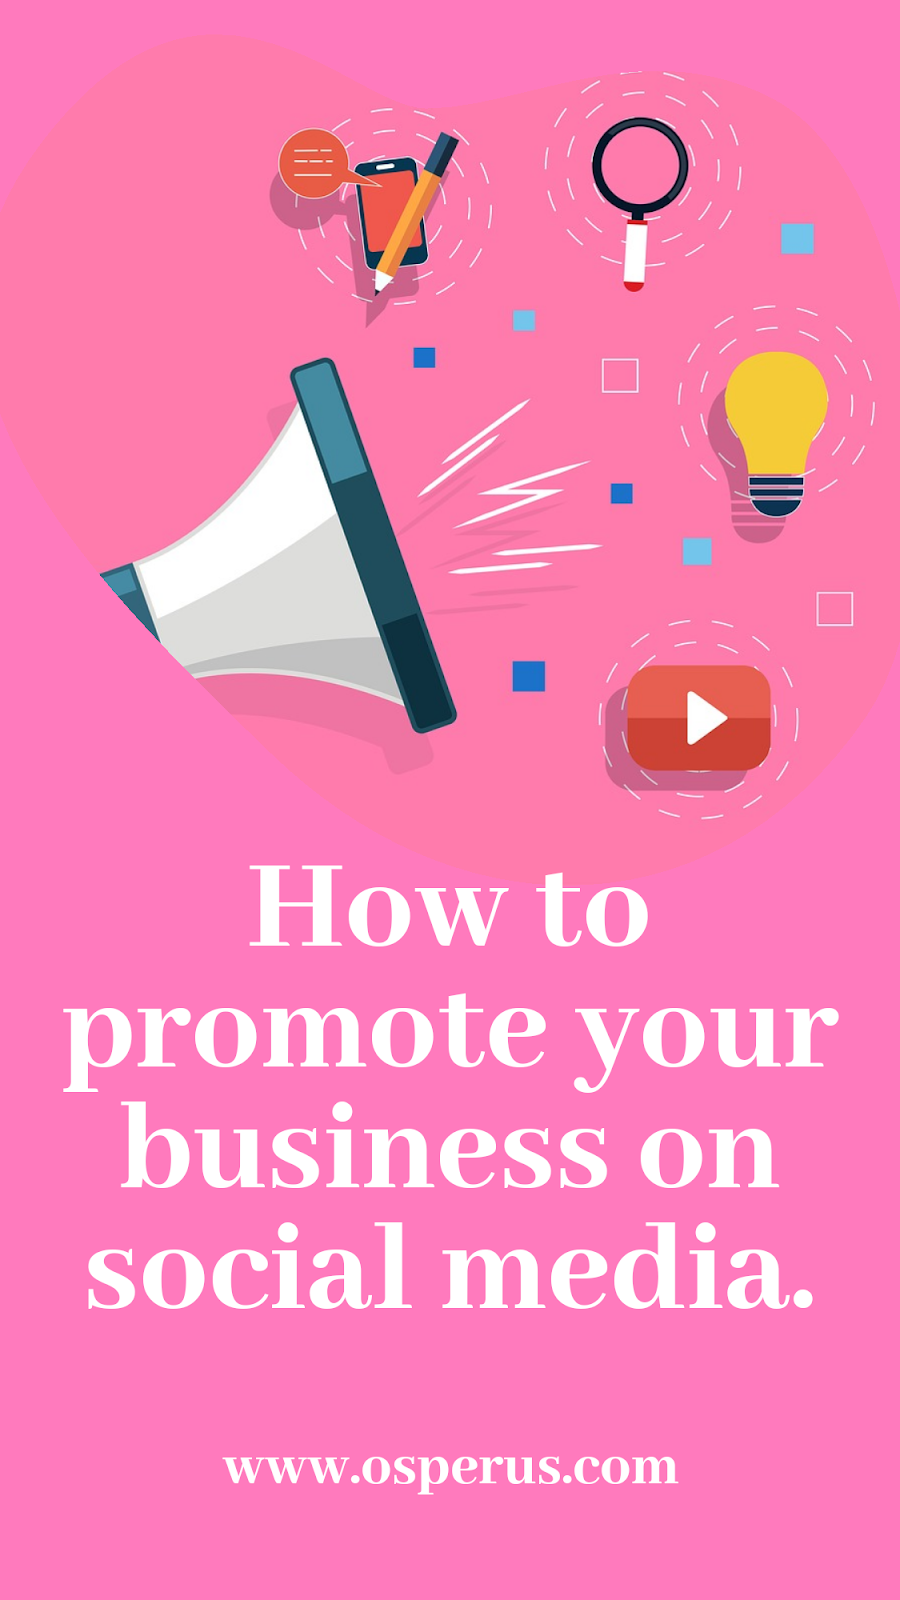 Are you looking for creative tips on how to promote your business on social media? This article covers some few basic tips on ways to promote small businesses on social media.